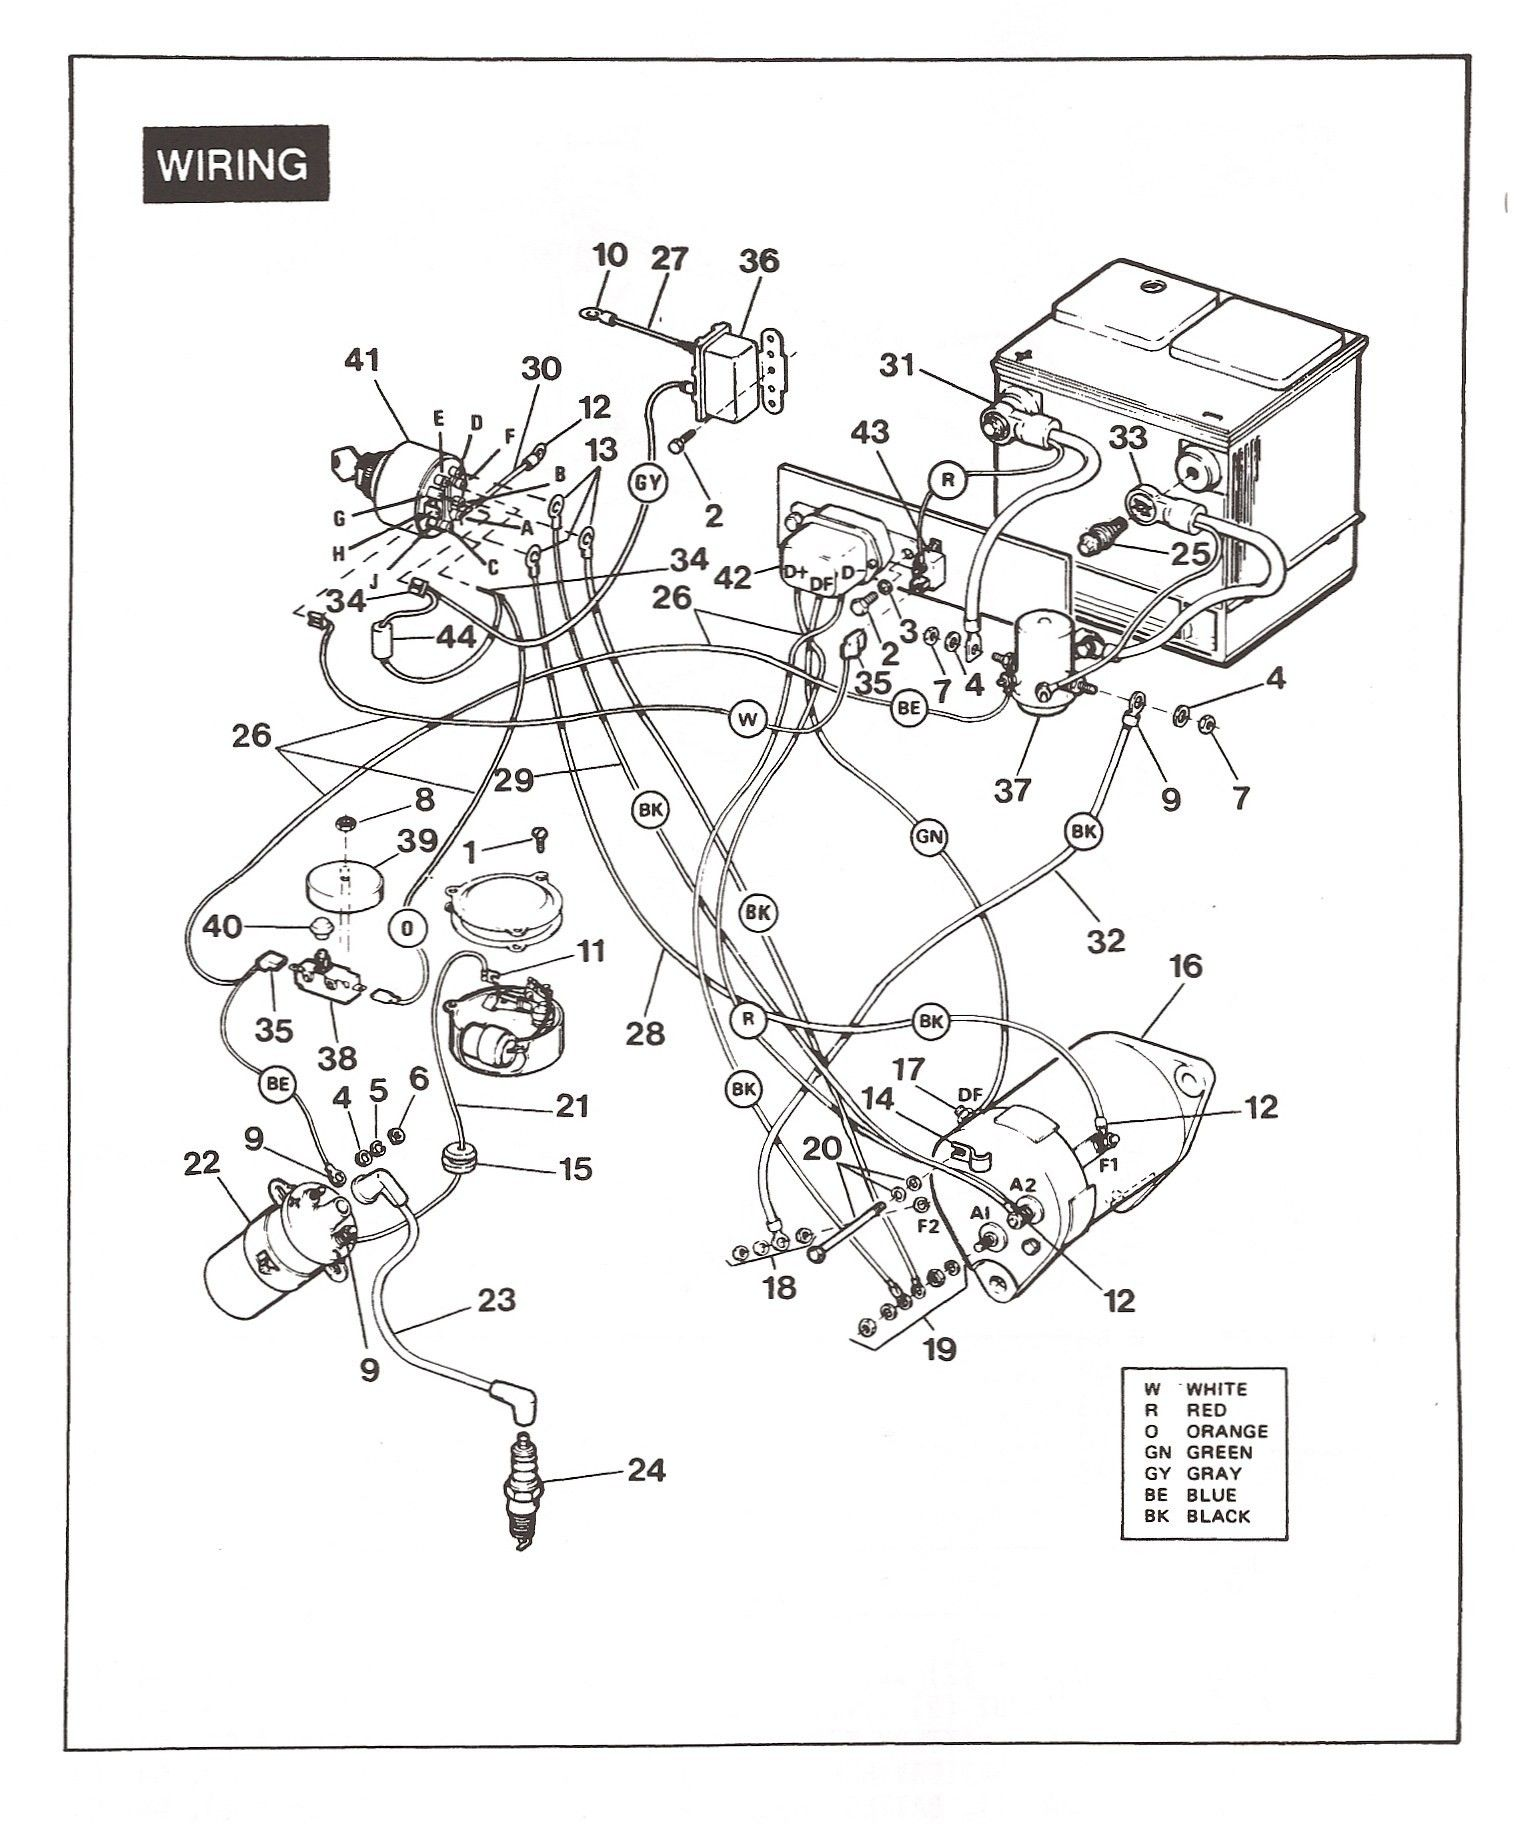 Unique Wiring Diagram Club Car Precedent